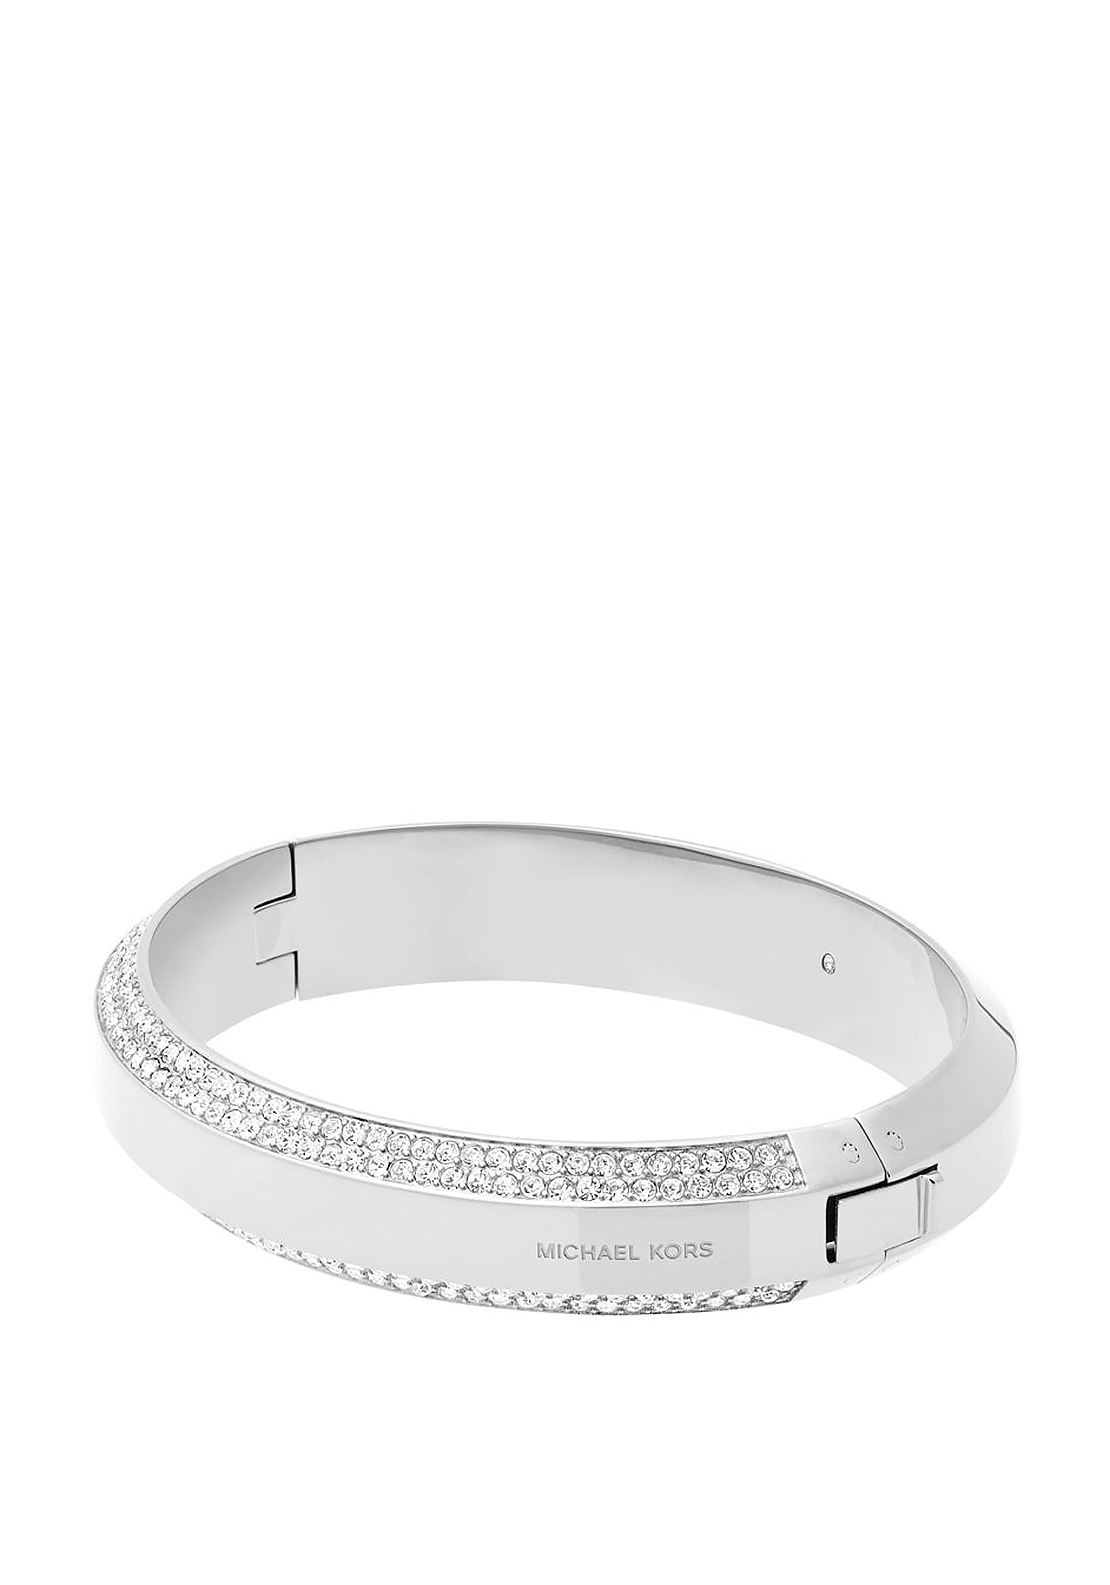 Michael Kors Pave Stone Hinge Bangle, Silver